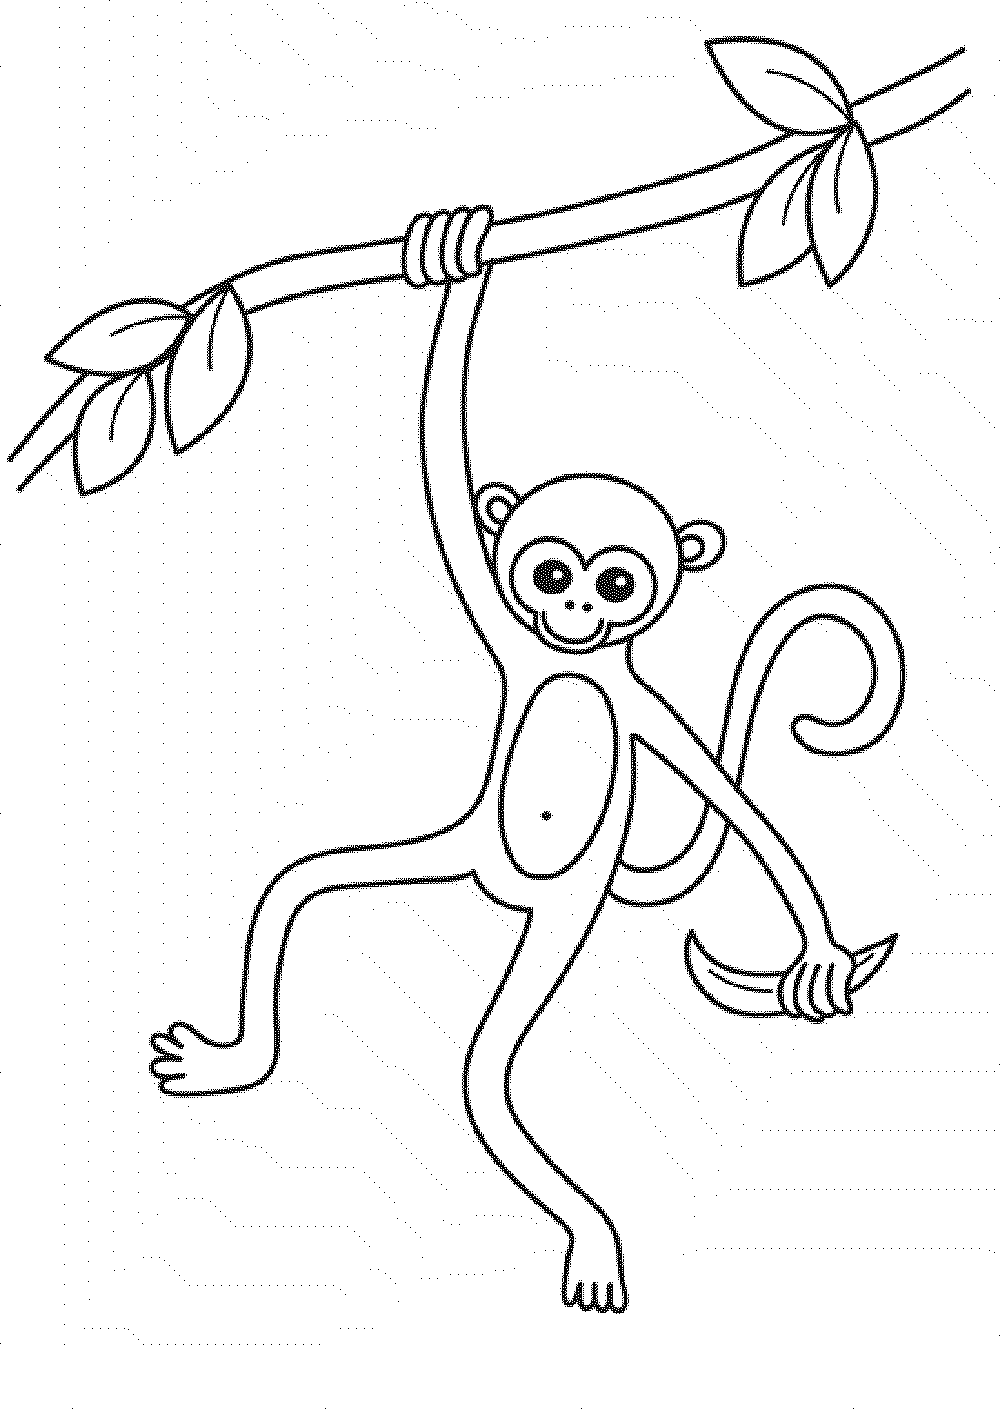 Print & Download - Coloring Monkey Head with Monkey ...